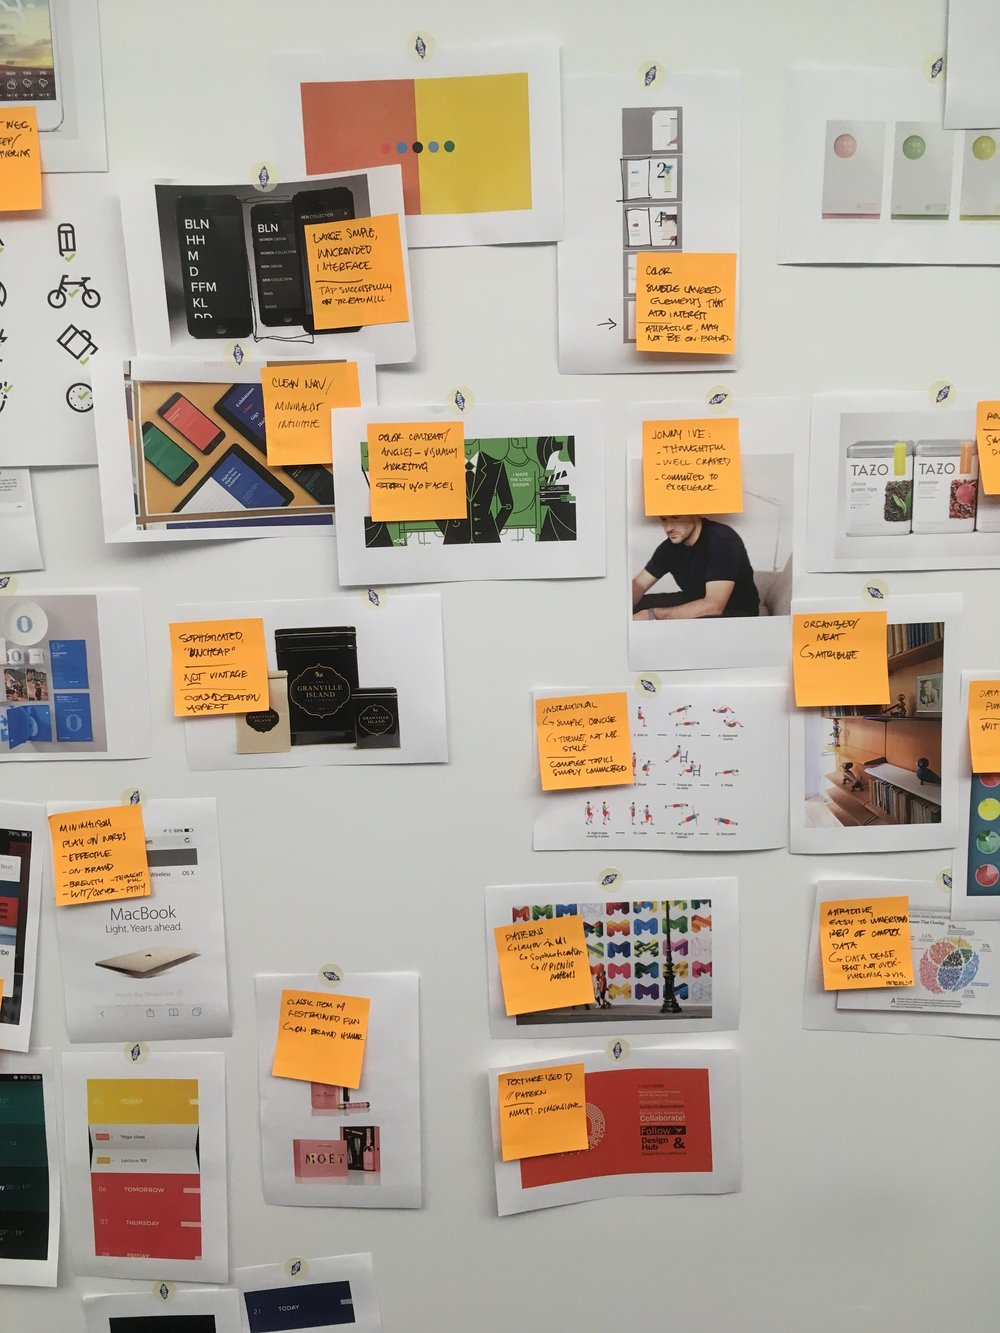 We use a range of tools, including image benchmarking, to help teams hone in on visual, verbal, tonal and conceptual ideas to drive projects forward.  Learn more  >